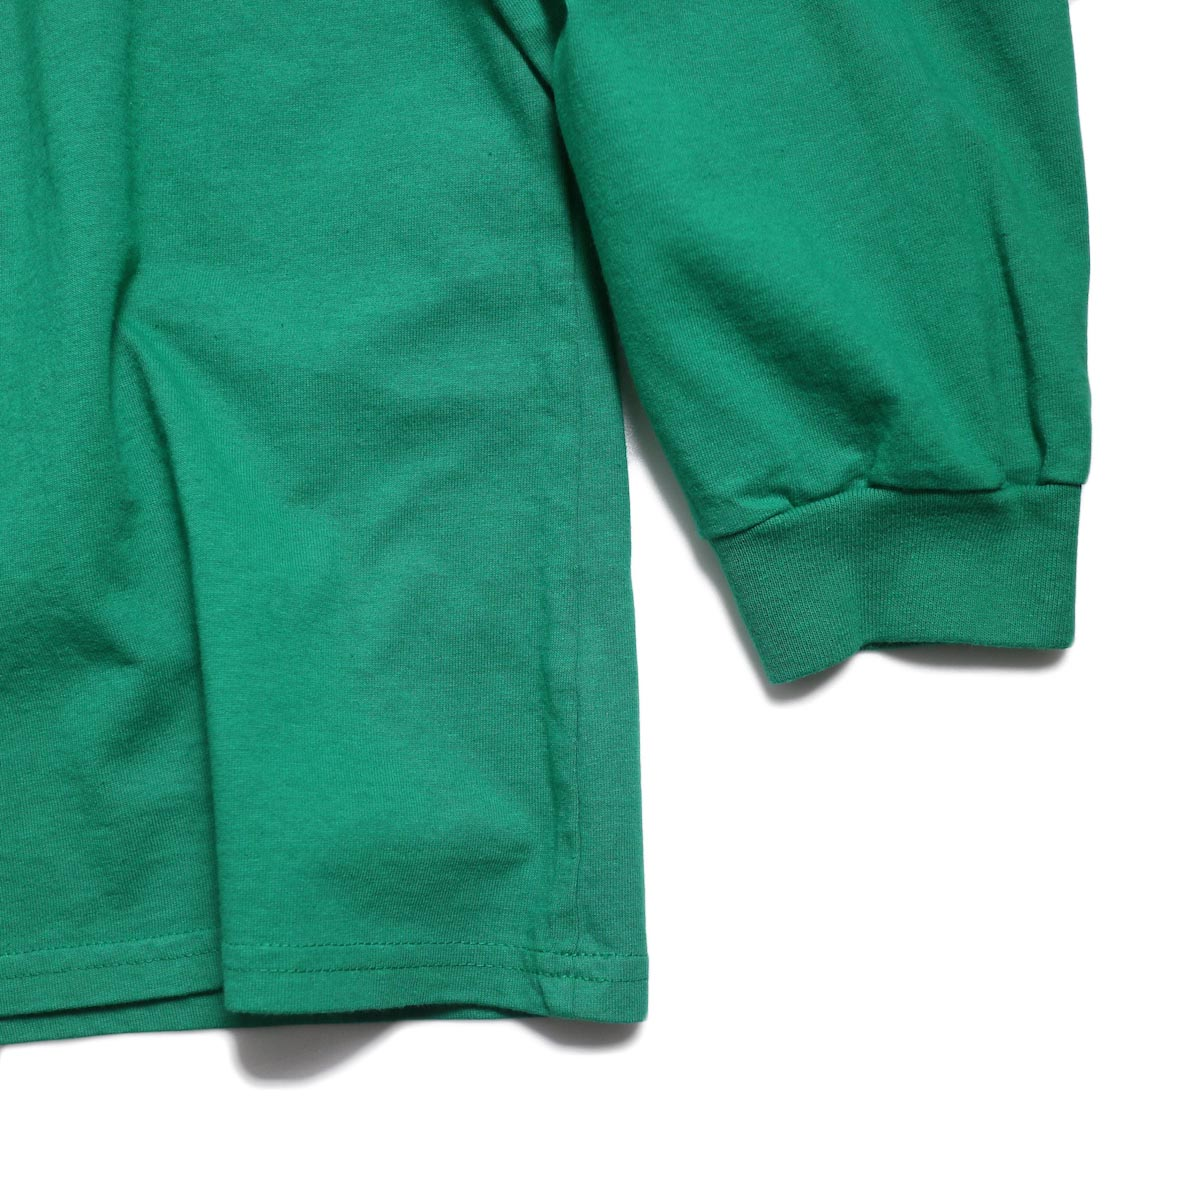 UNIVERSAL PRODUCTS / Heavy Weight L/S T-Shirt -Green 裾、袖